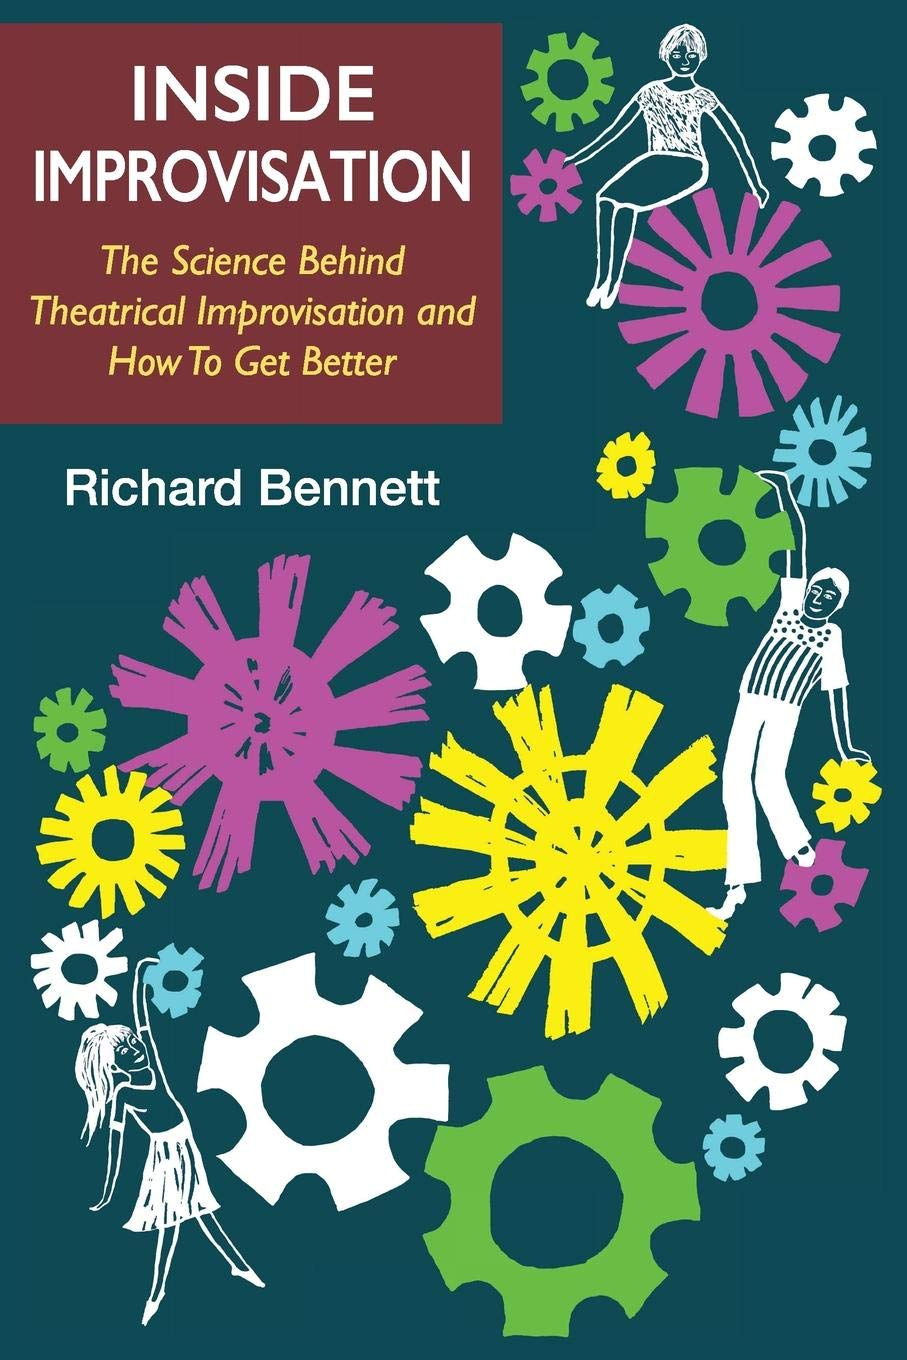 Inside Improvisation - Richard Bennett